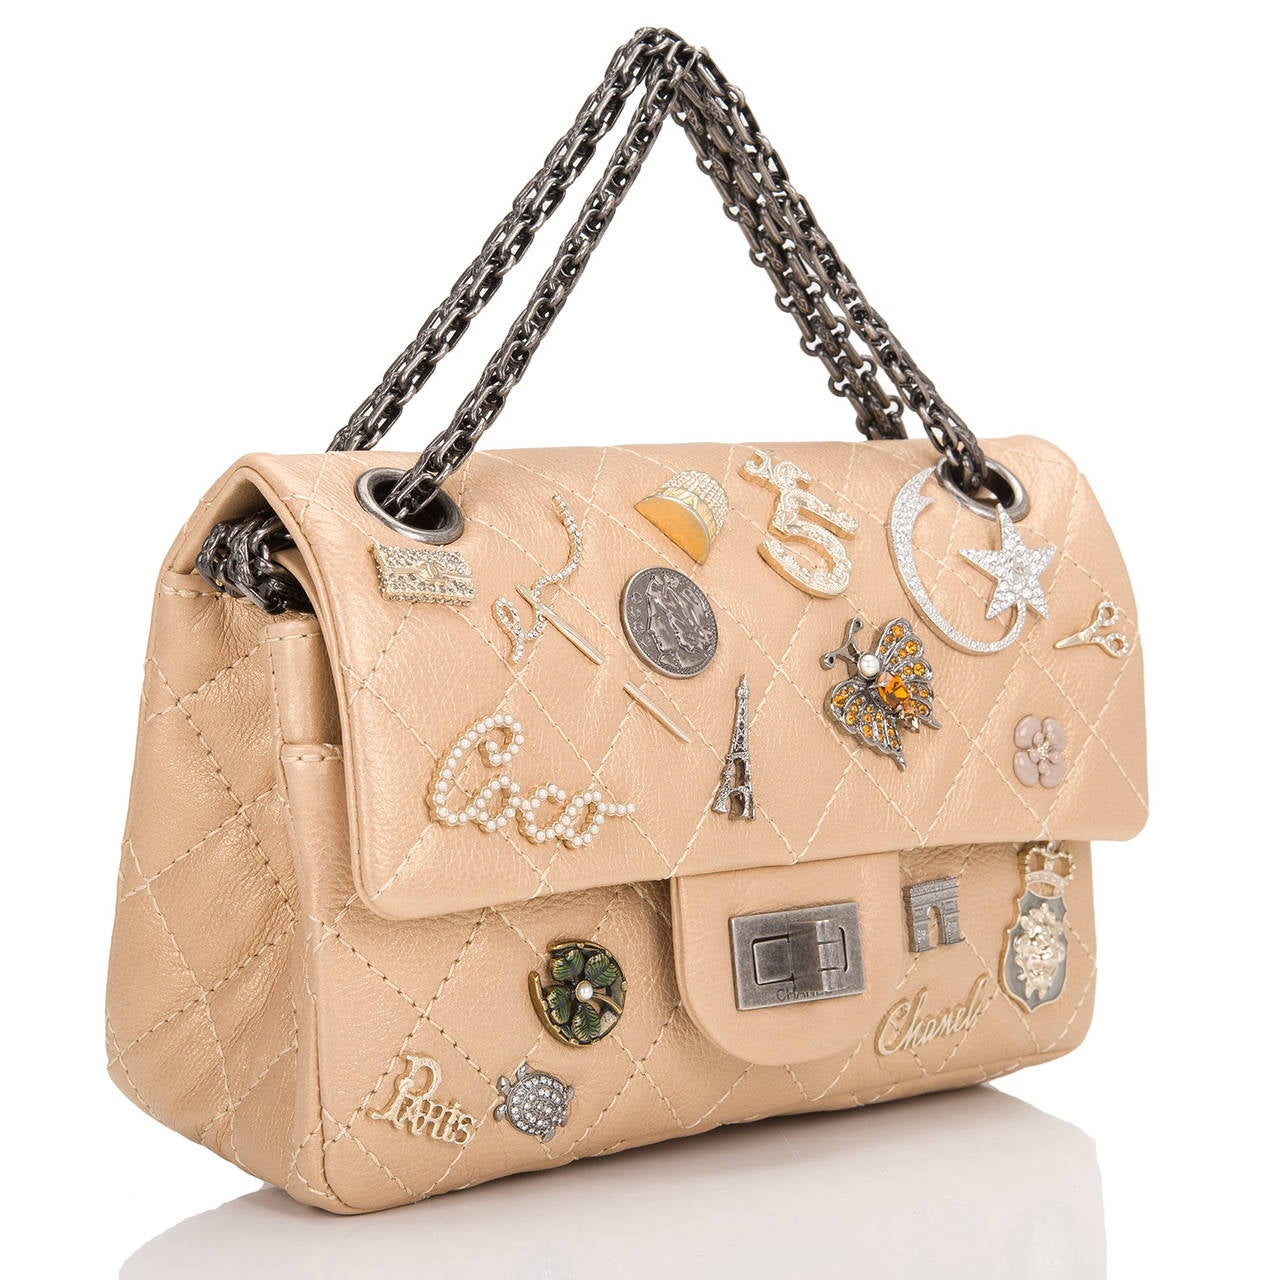 This Limited Edition Chanel Lucky Charm Reissue 2.55 bag in gold aged calfskin leather with aged ruthenium hardware in size 224. This embellished Chanel bag features 21 iconic Chanel charms, front flap with Mademoiselle turnlock closure, a half moon